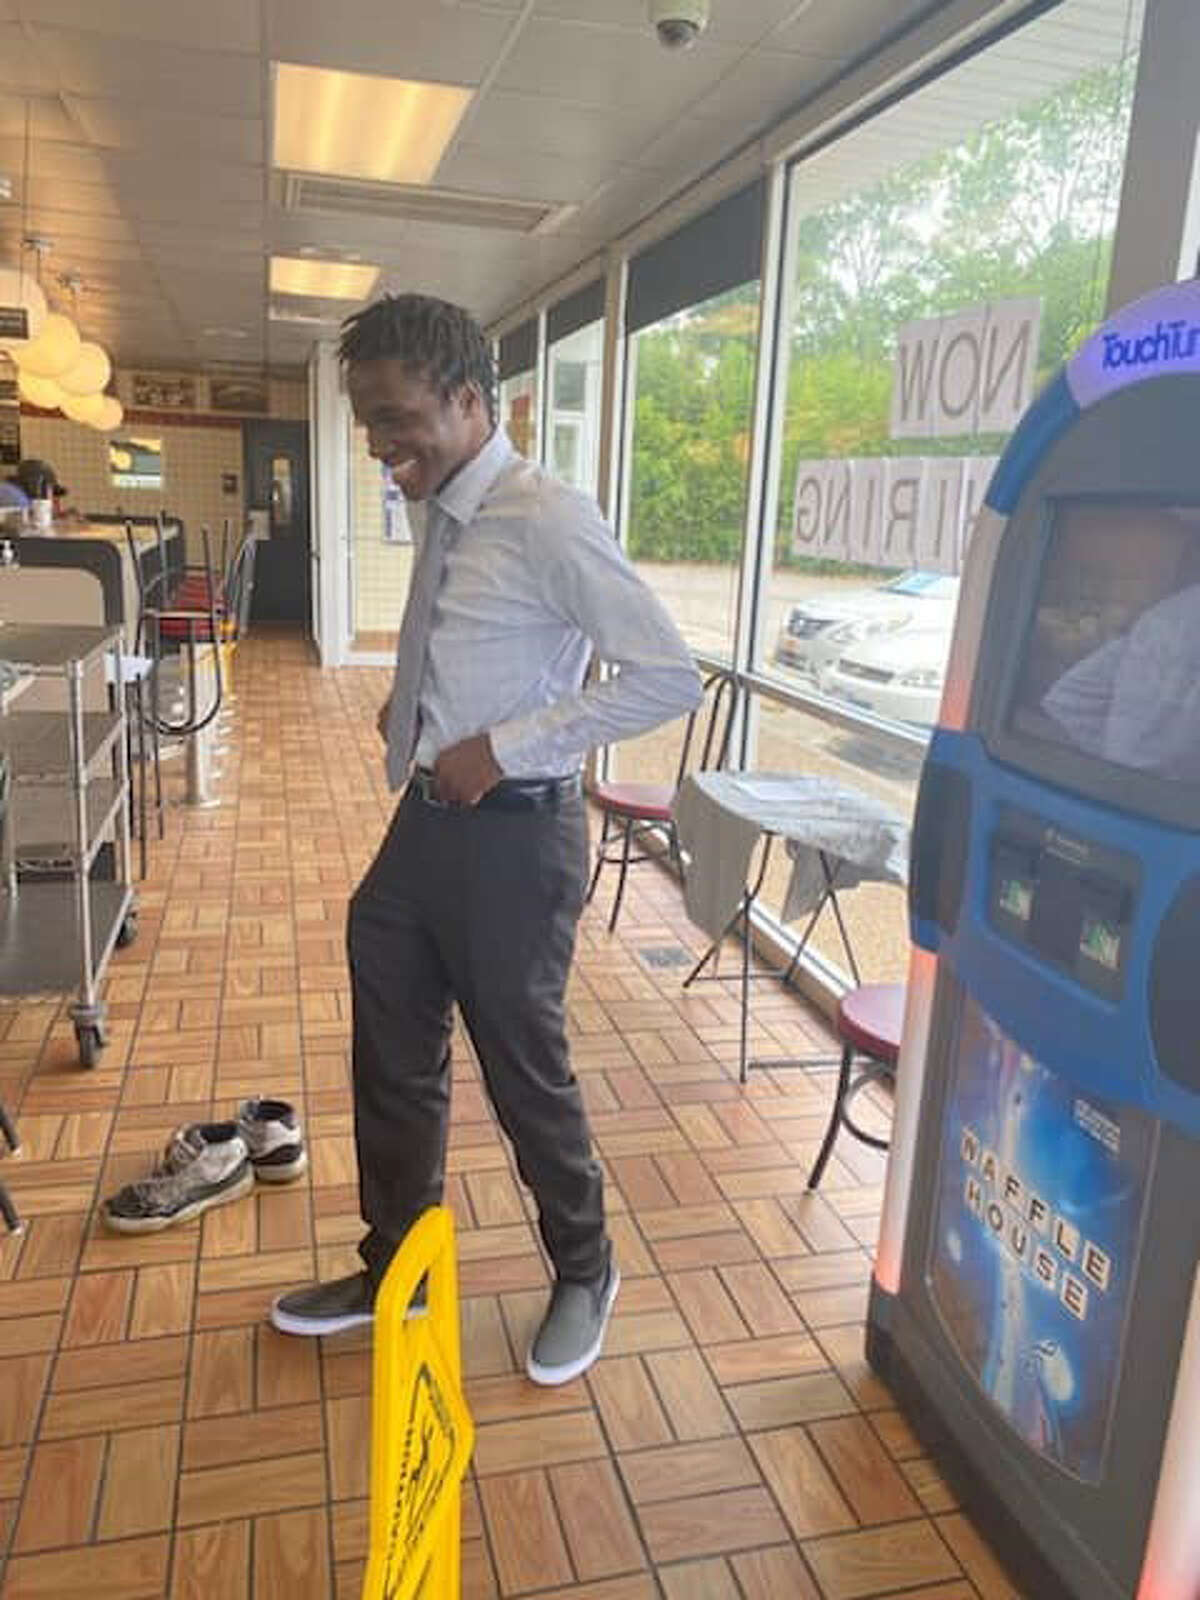 Several Waffle House staff members and customers pitched in to buy Harrison a new outfit from Target for graduation day.